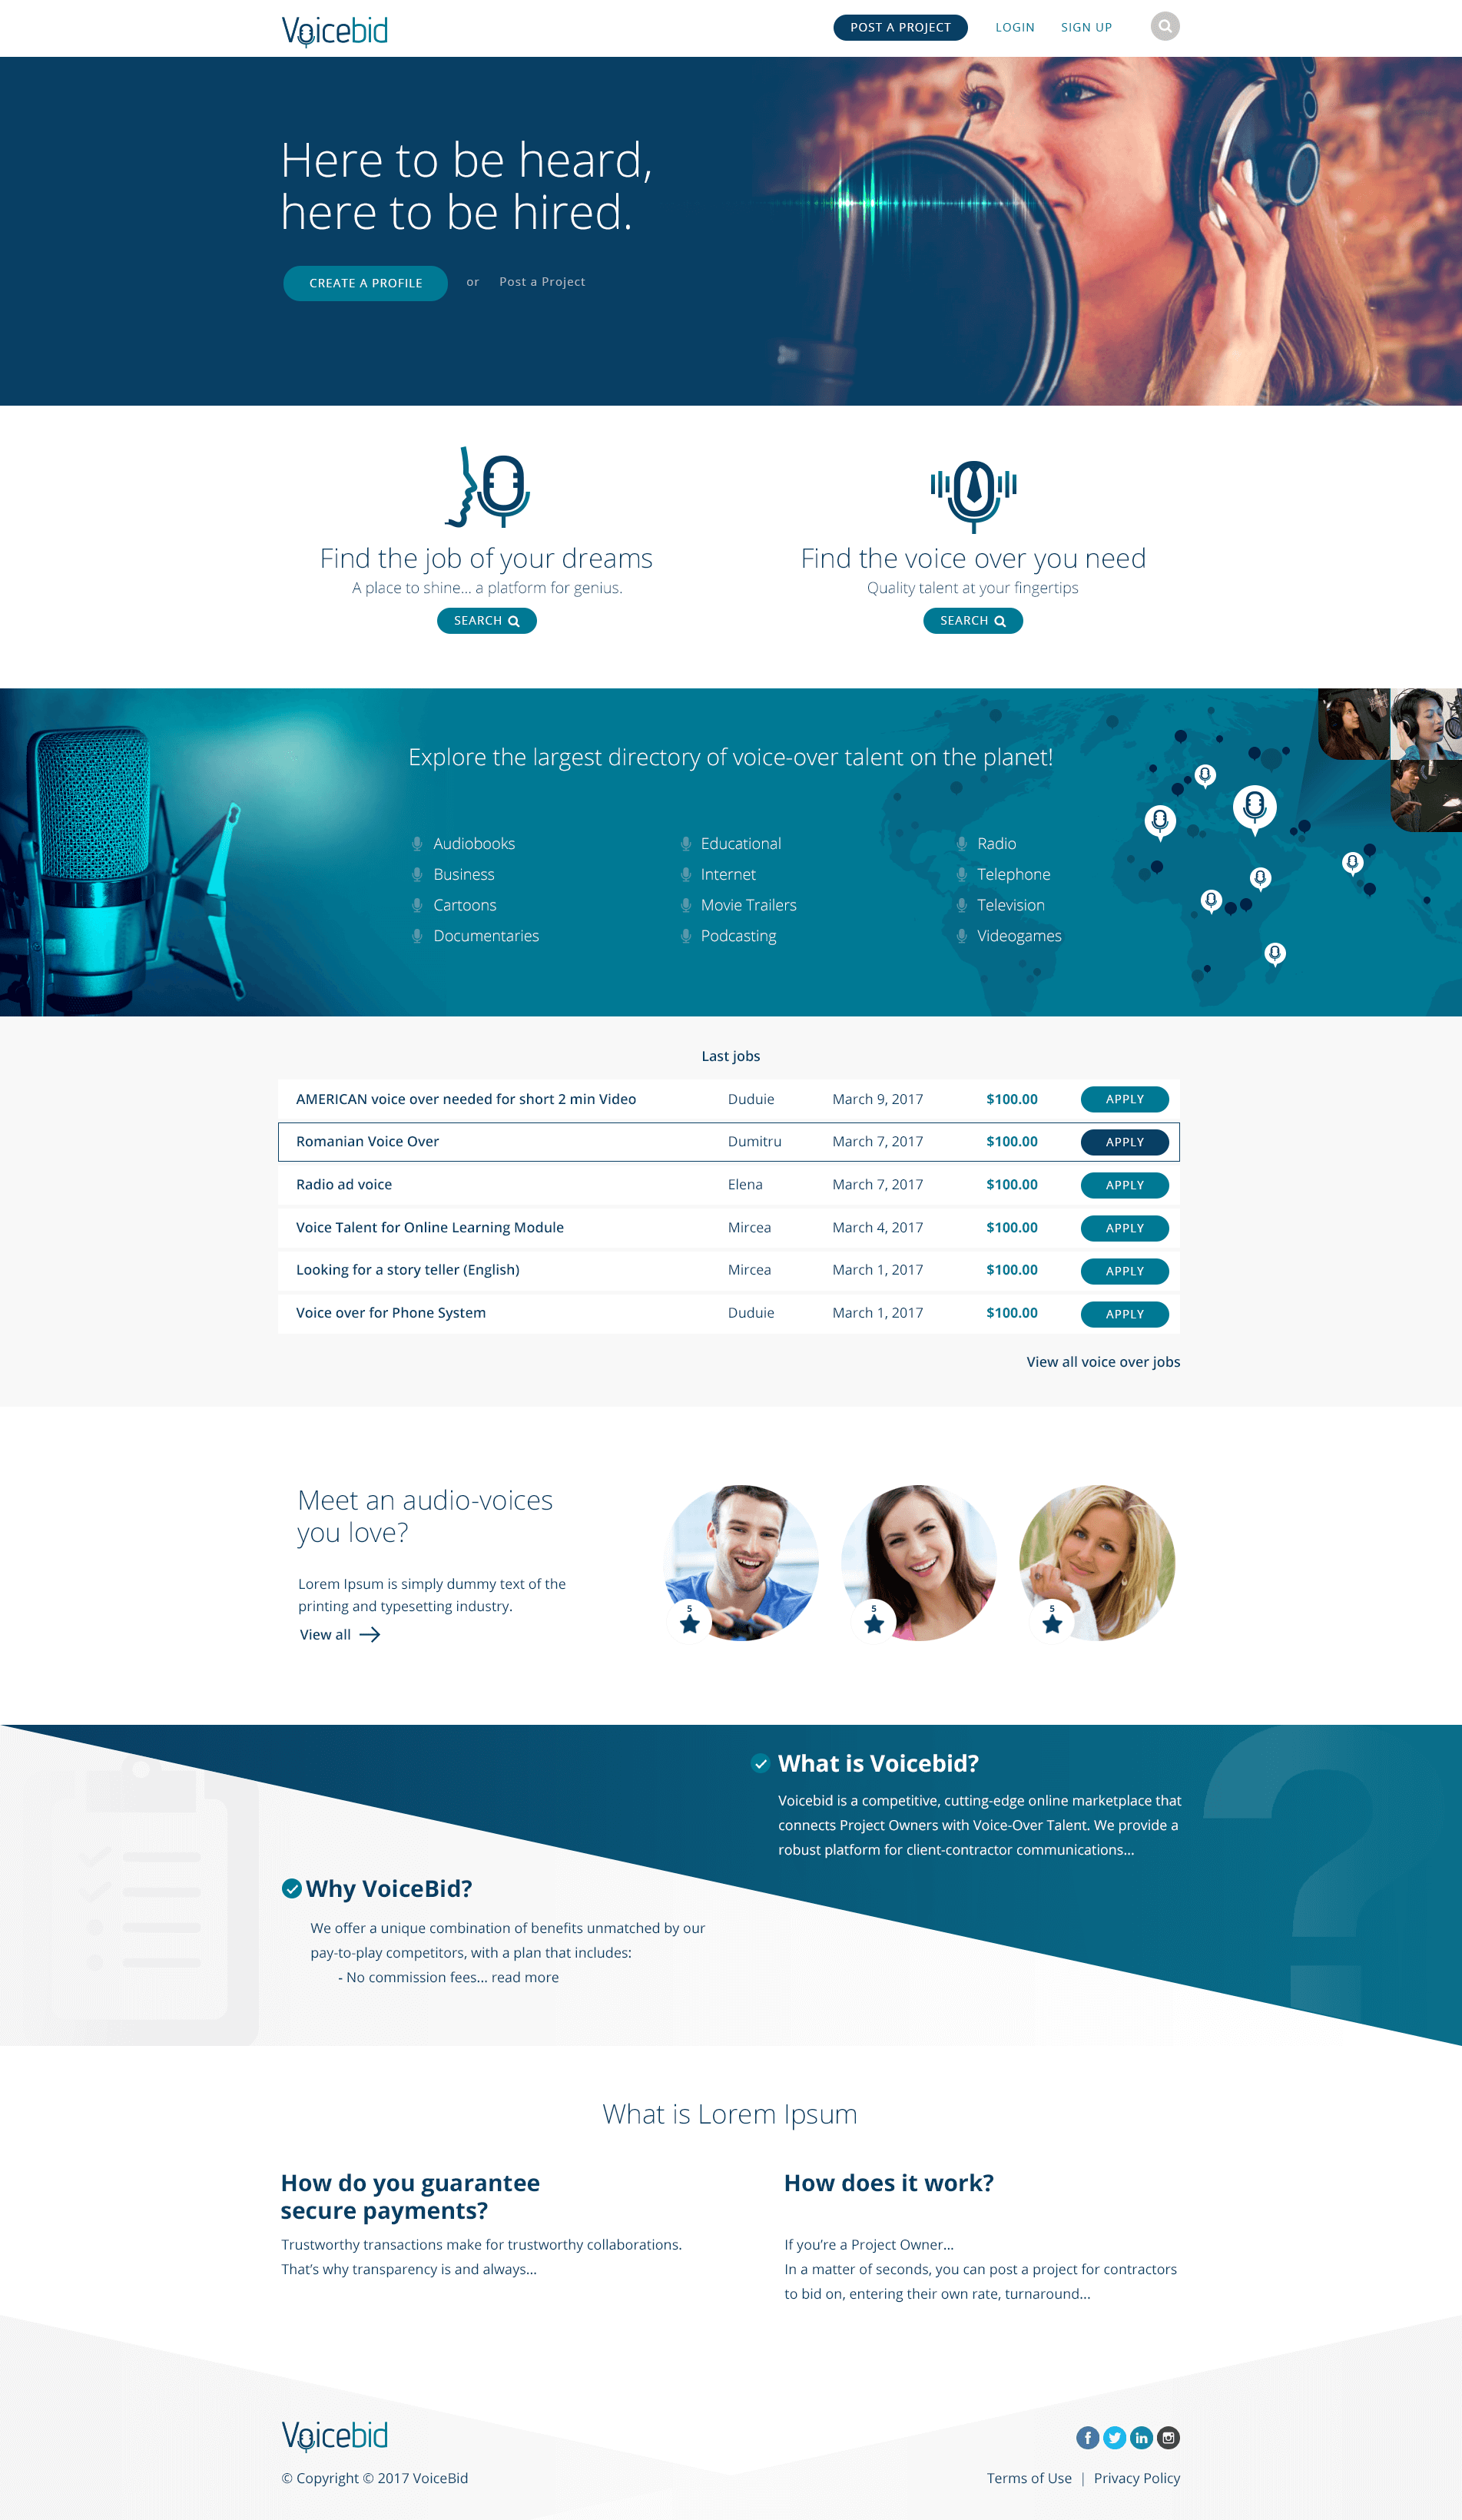 VoiceBid Home Page